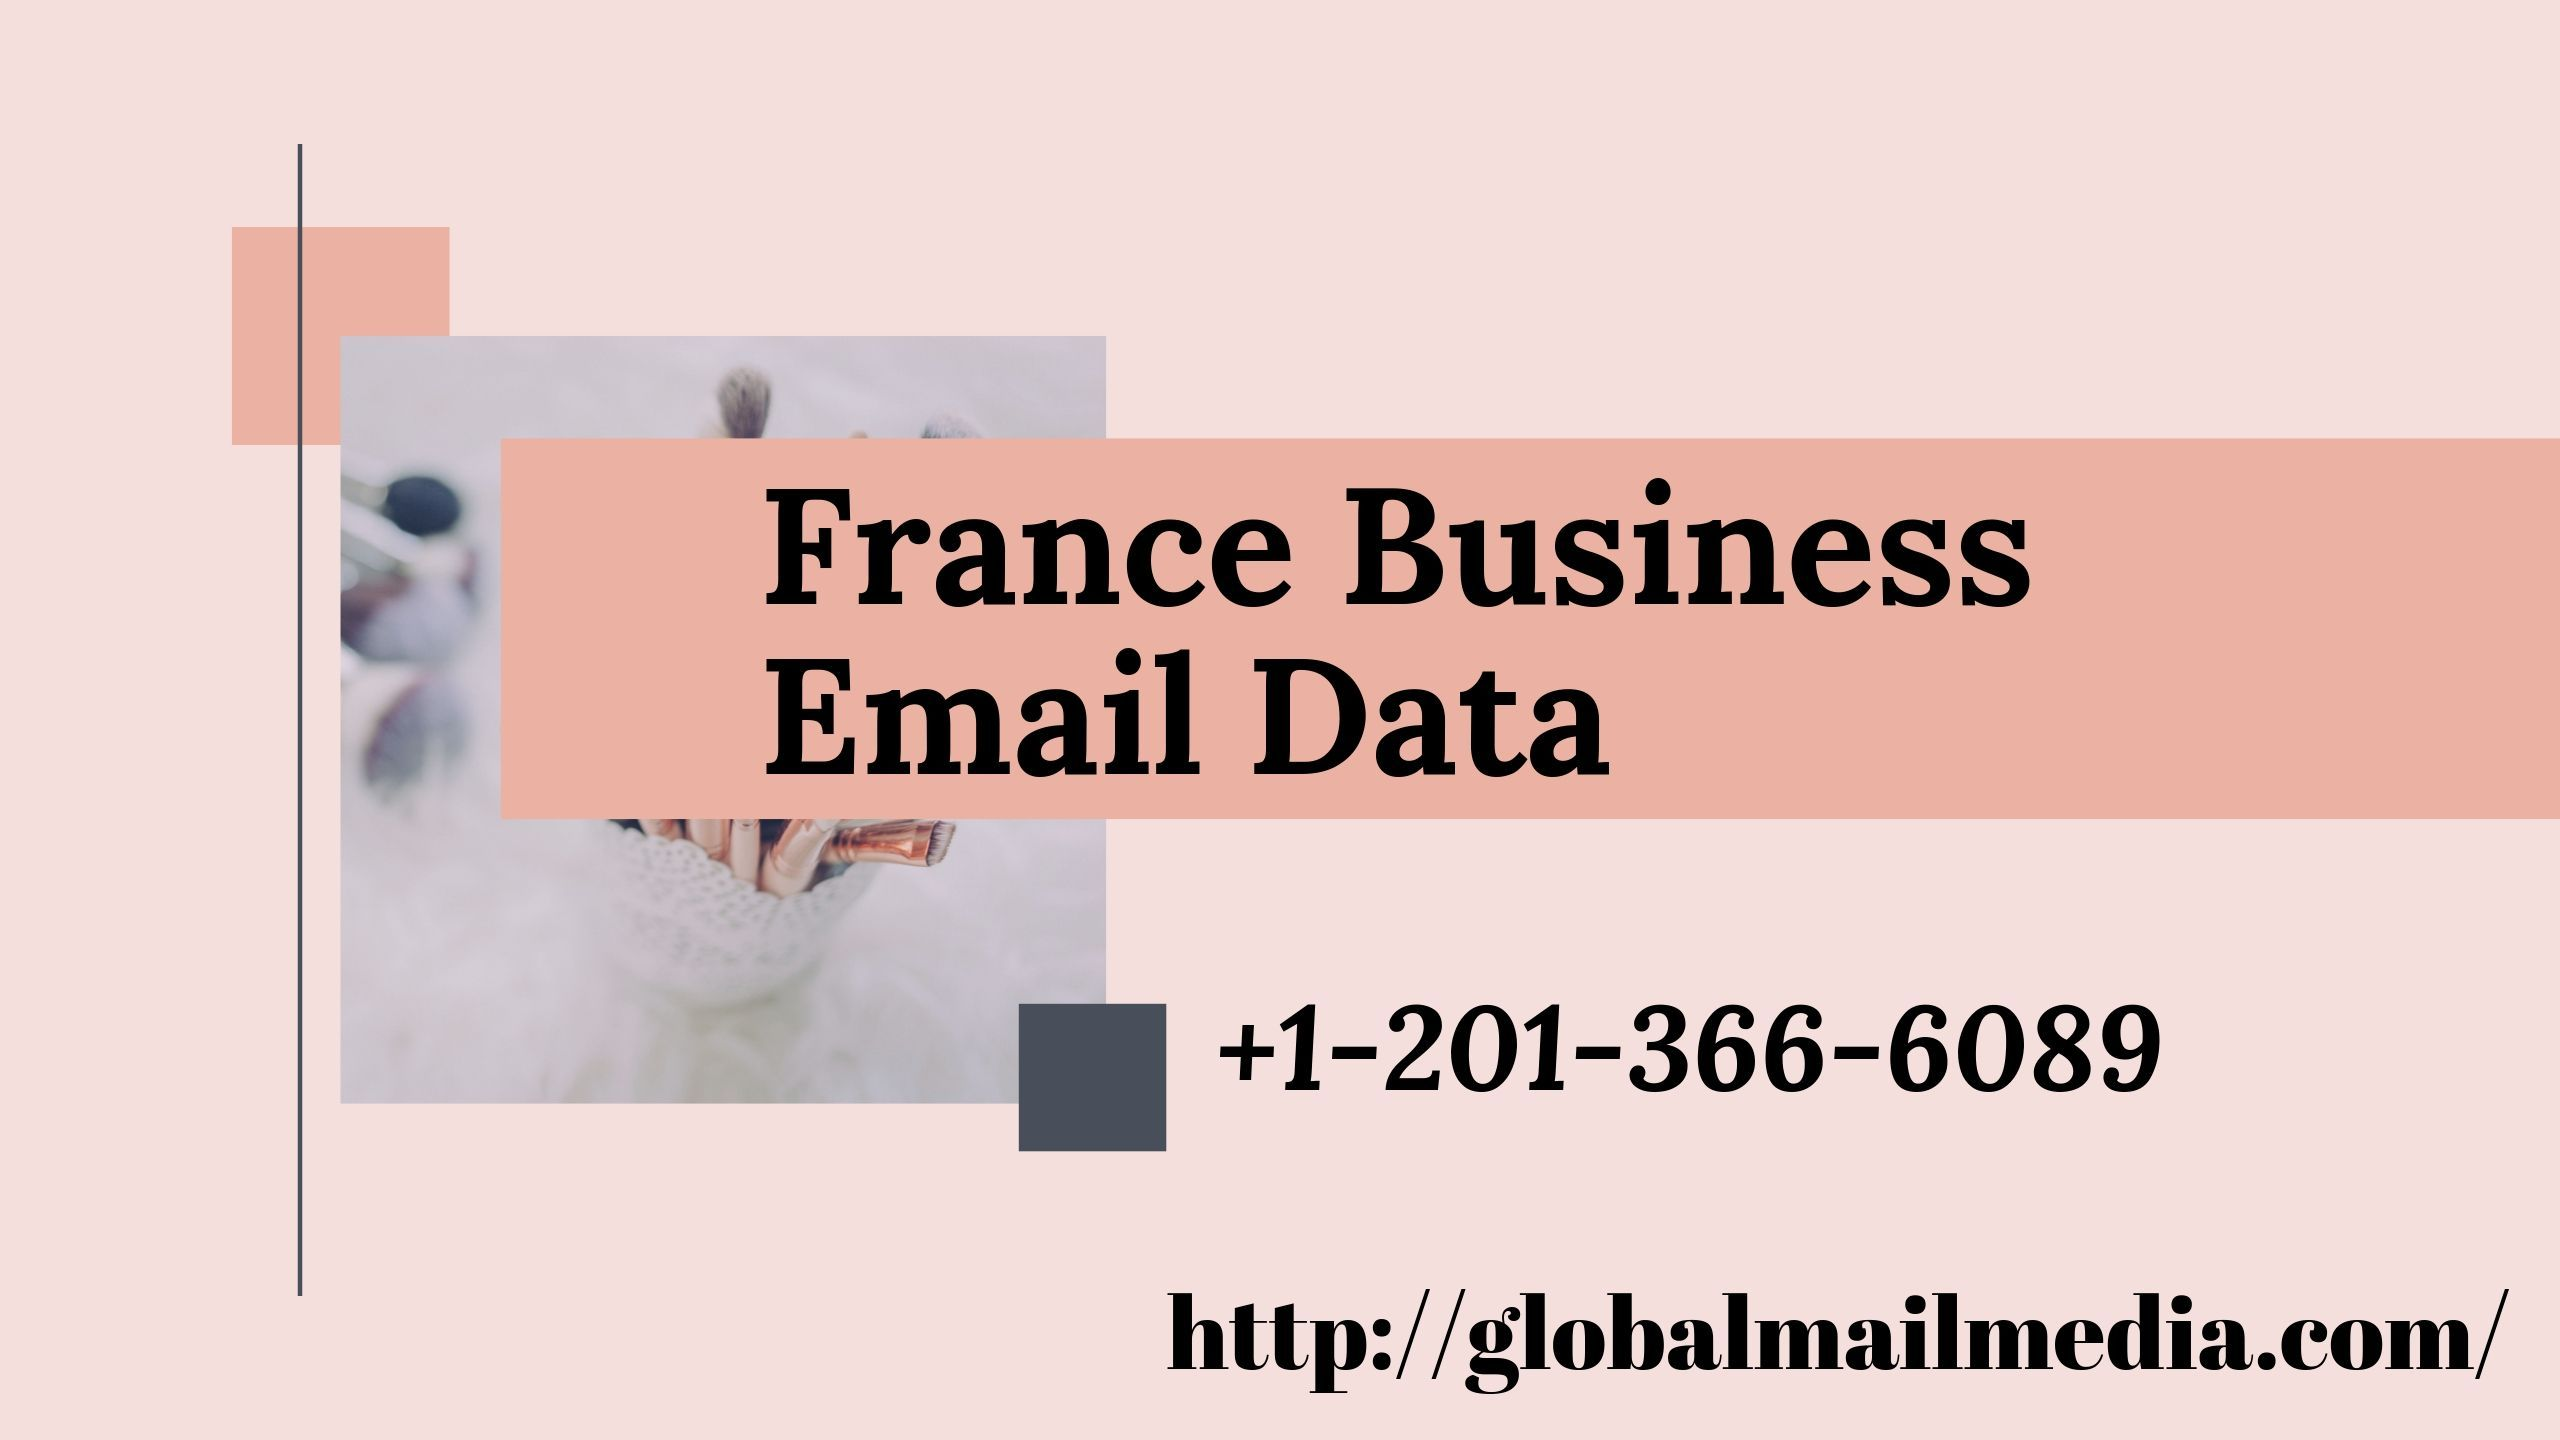 France Business Email Data Business emails, Marketing